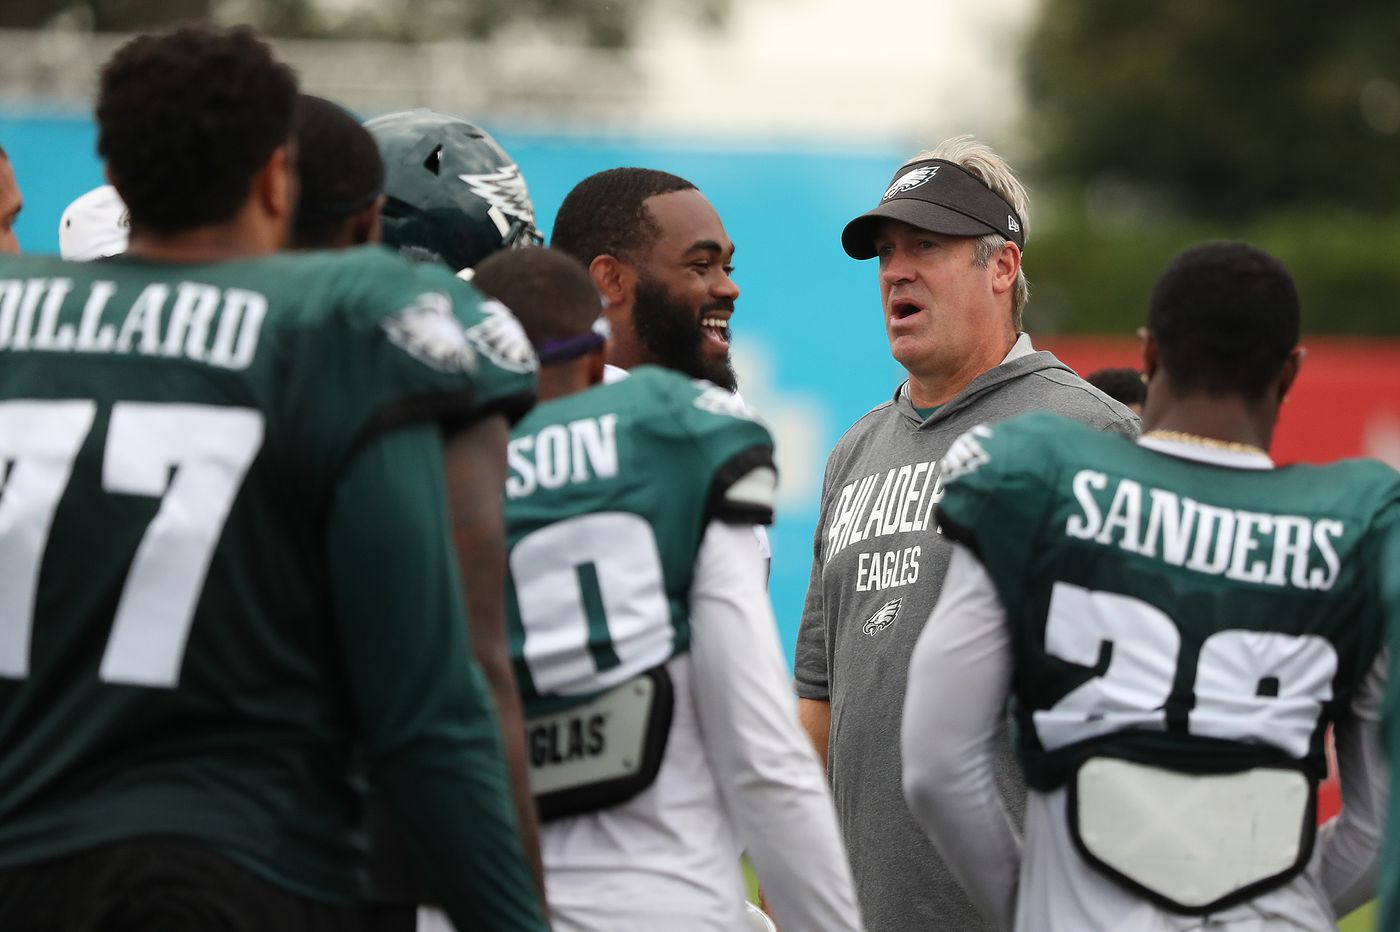 How will COVID-19 precautions affect Doug Pederson, Eagles' ability to evaluate, build roster?